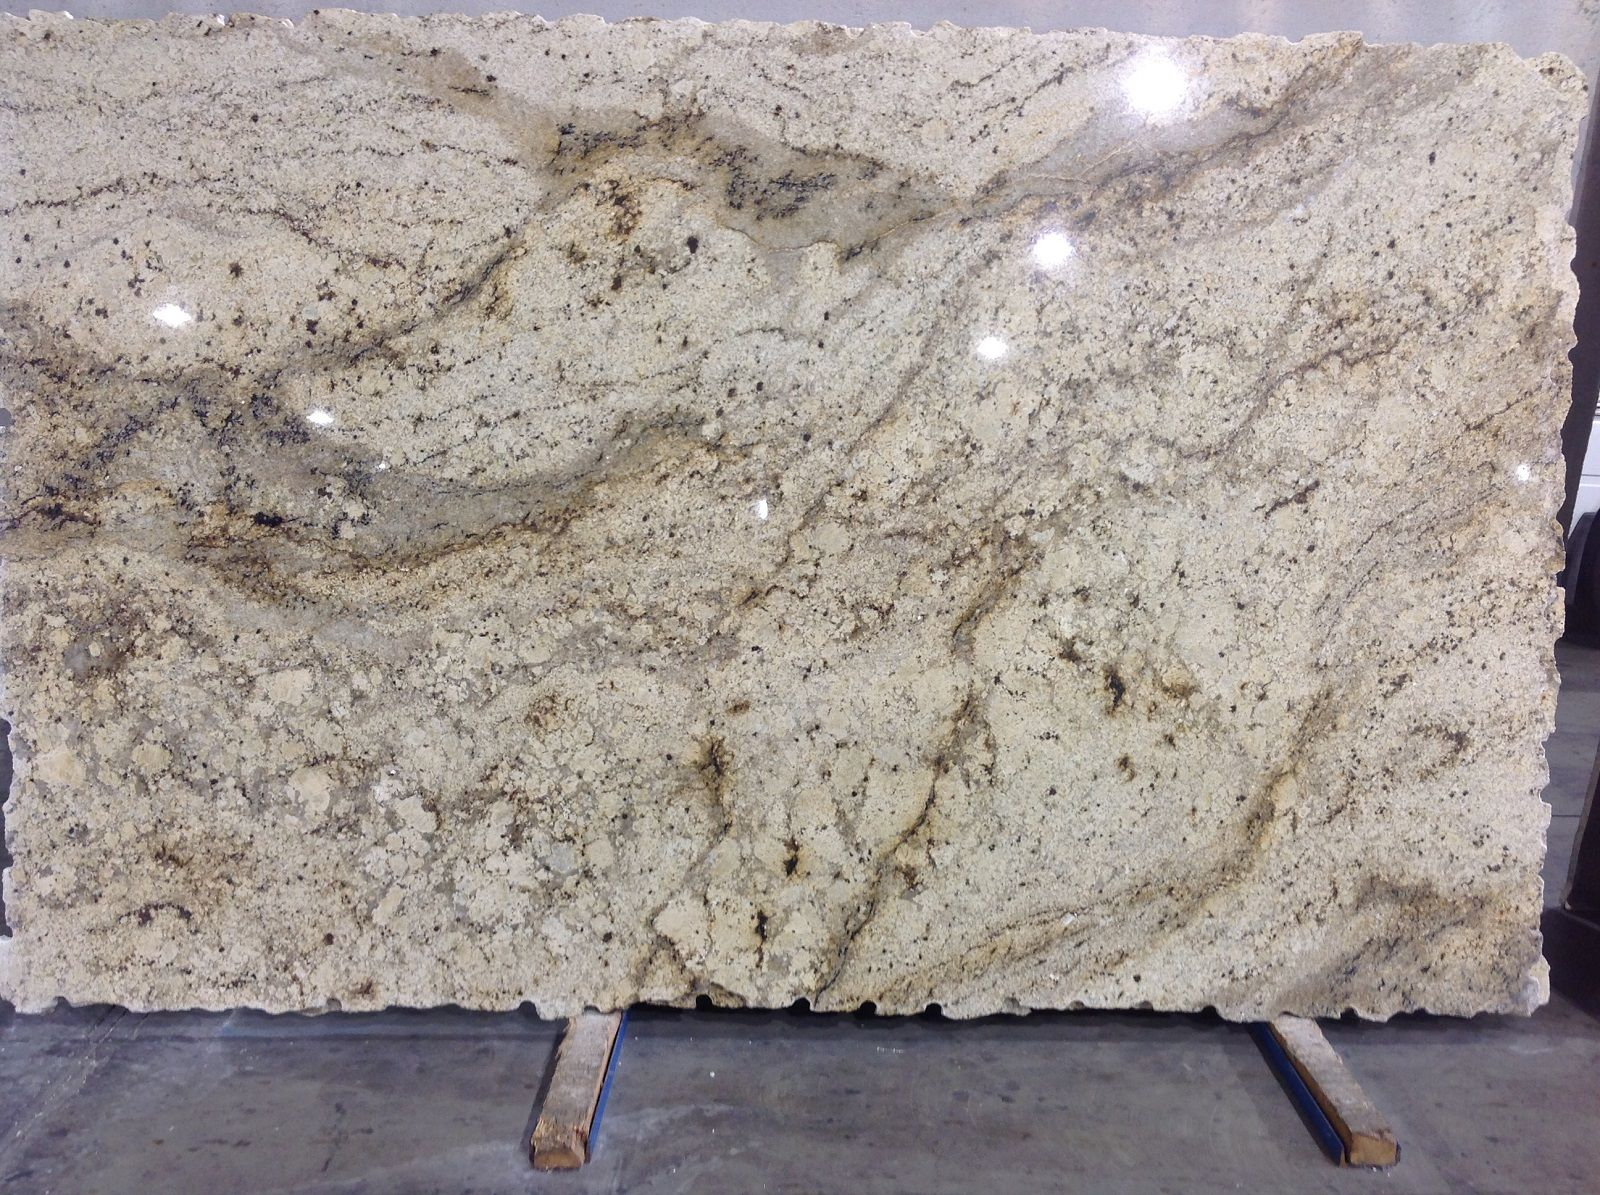 Sienna Beige Granite Name Extra Material Color S Origin Brazil This Is What I Am Looking For